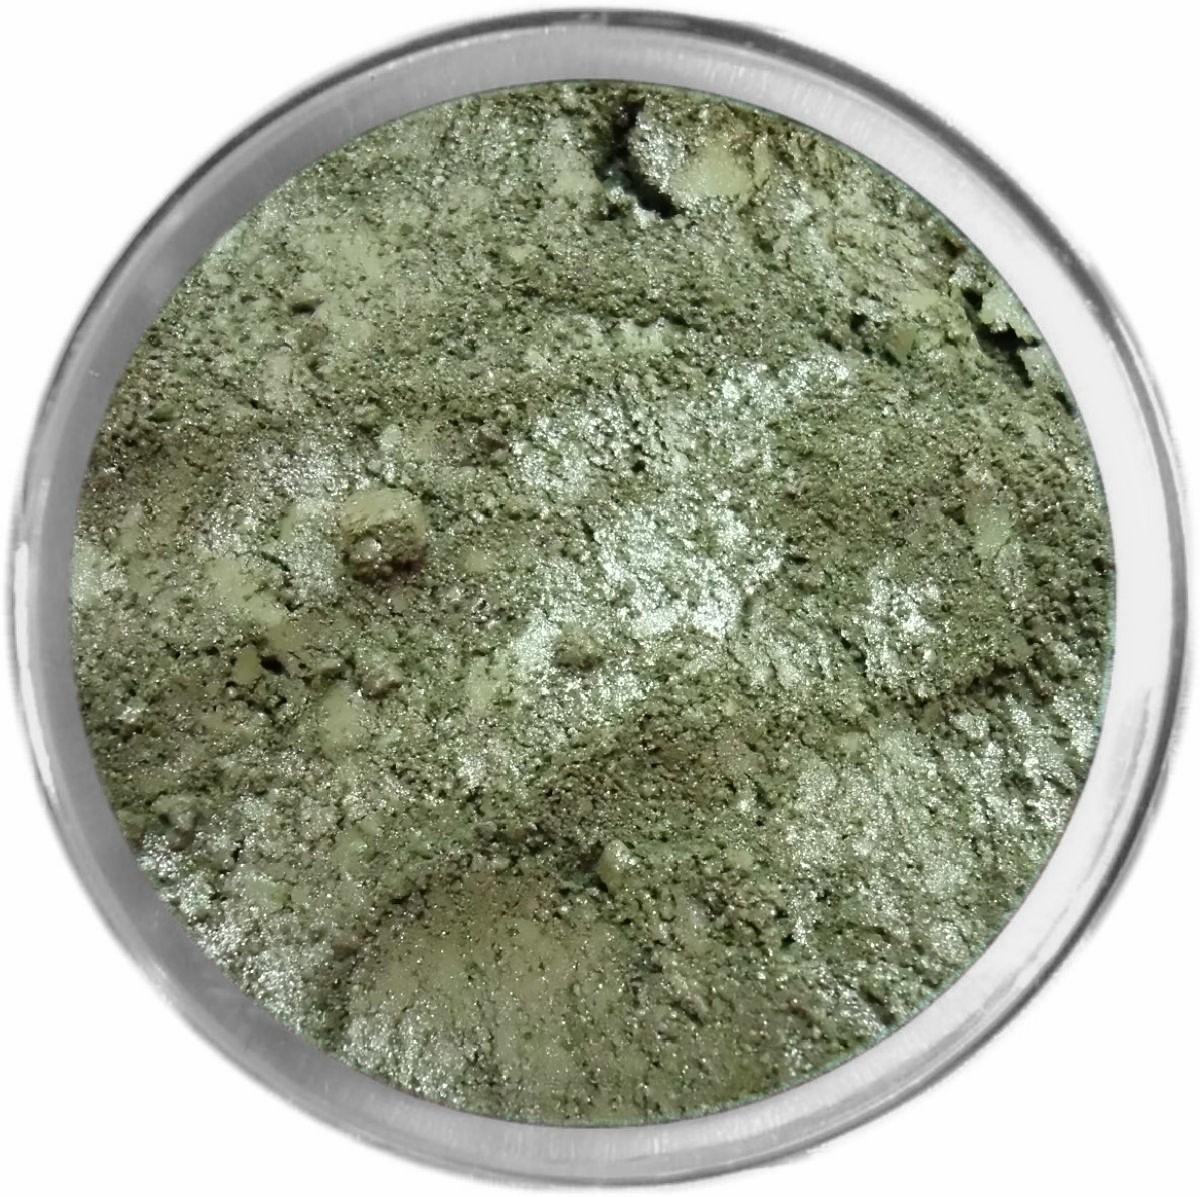 ARMY GREEN loose powder mineral multi-use color makeup bare earth pigment minerals